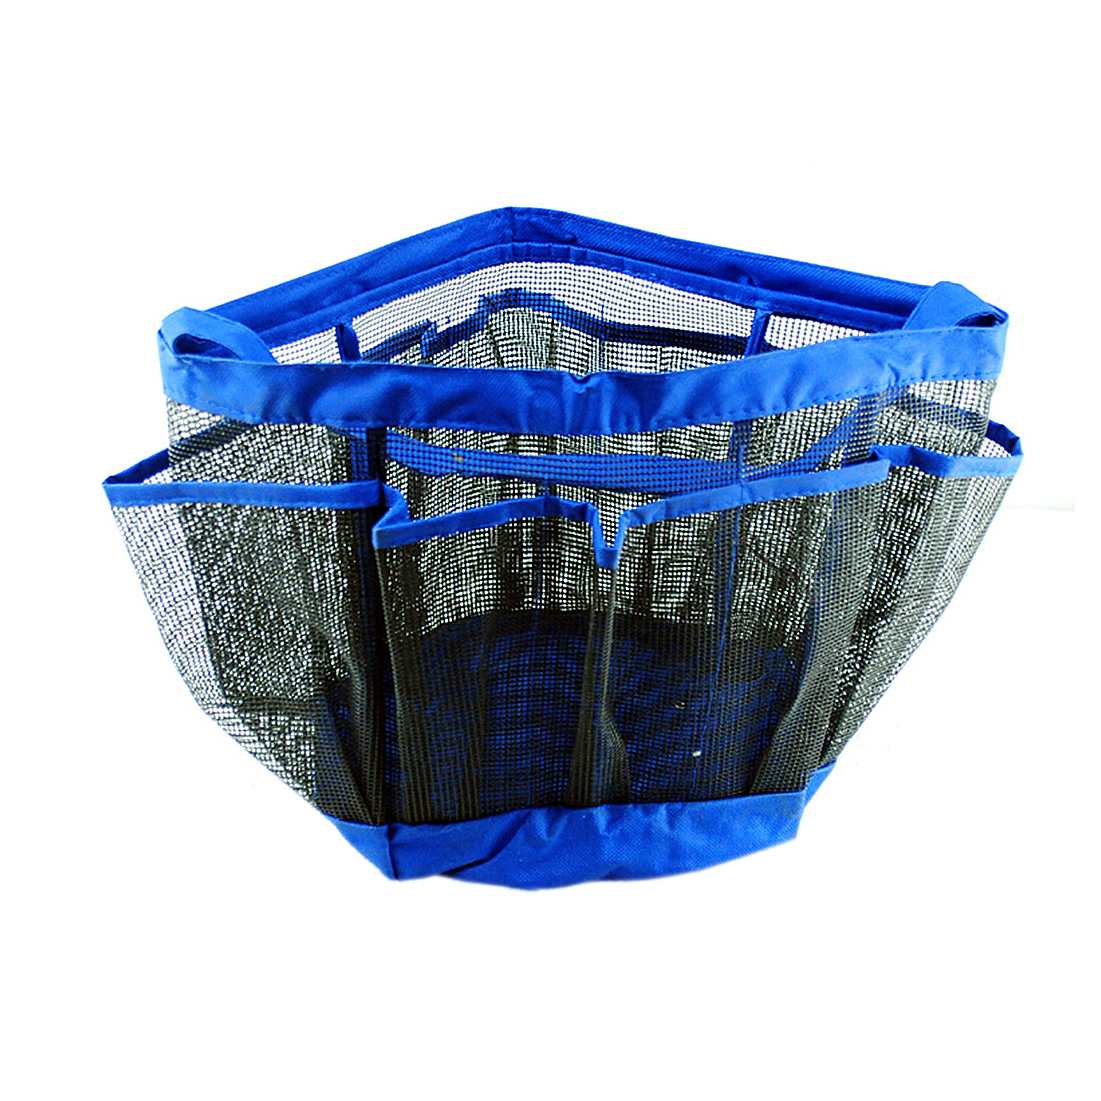 Hanging Blue Multifunctional Grid Organizer Wash Bag Mesh Makeup Storage Cas 5b729c53d9fd913f6510b6de